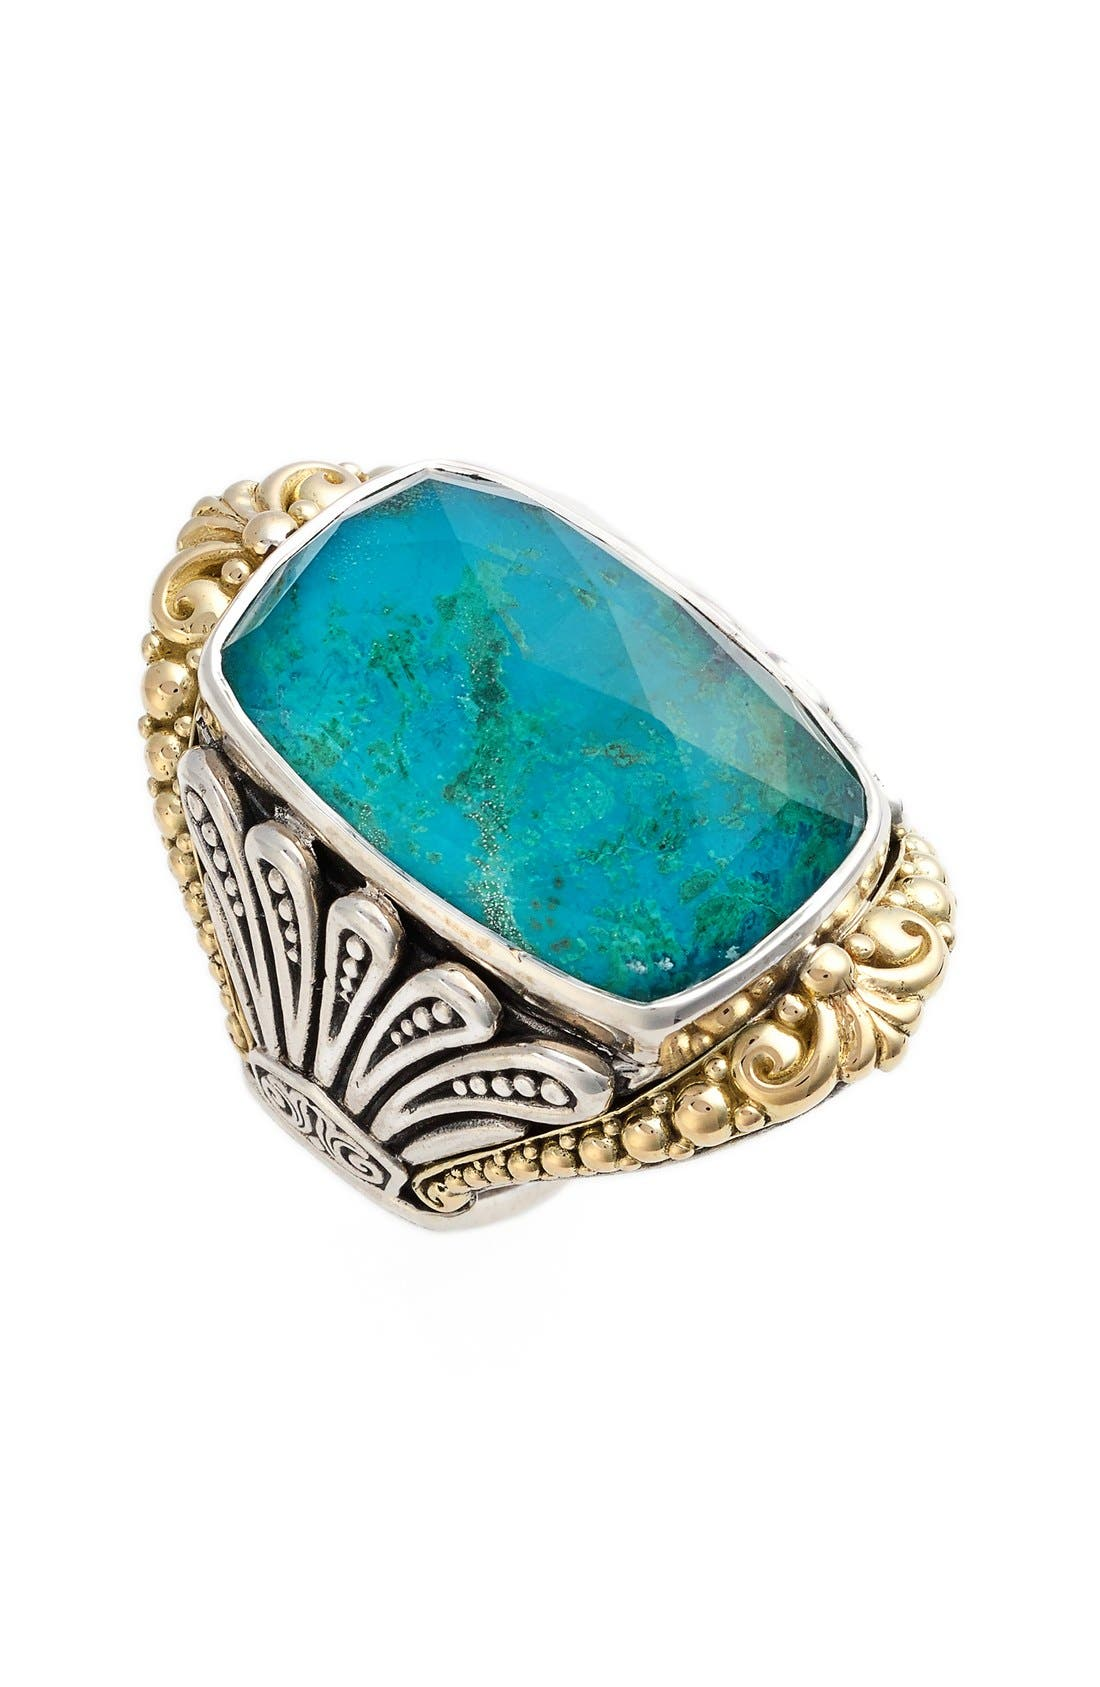 'Iliada' Large Doublet Ring,                         Main,                         color, Blue/ Green